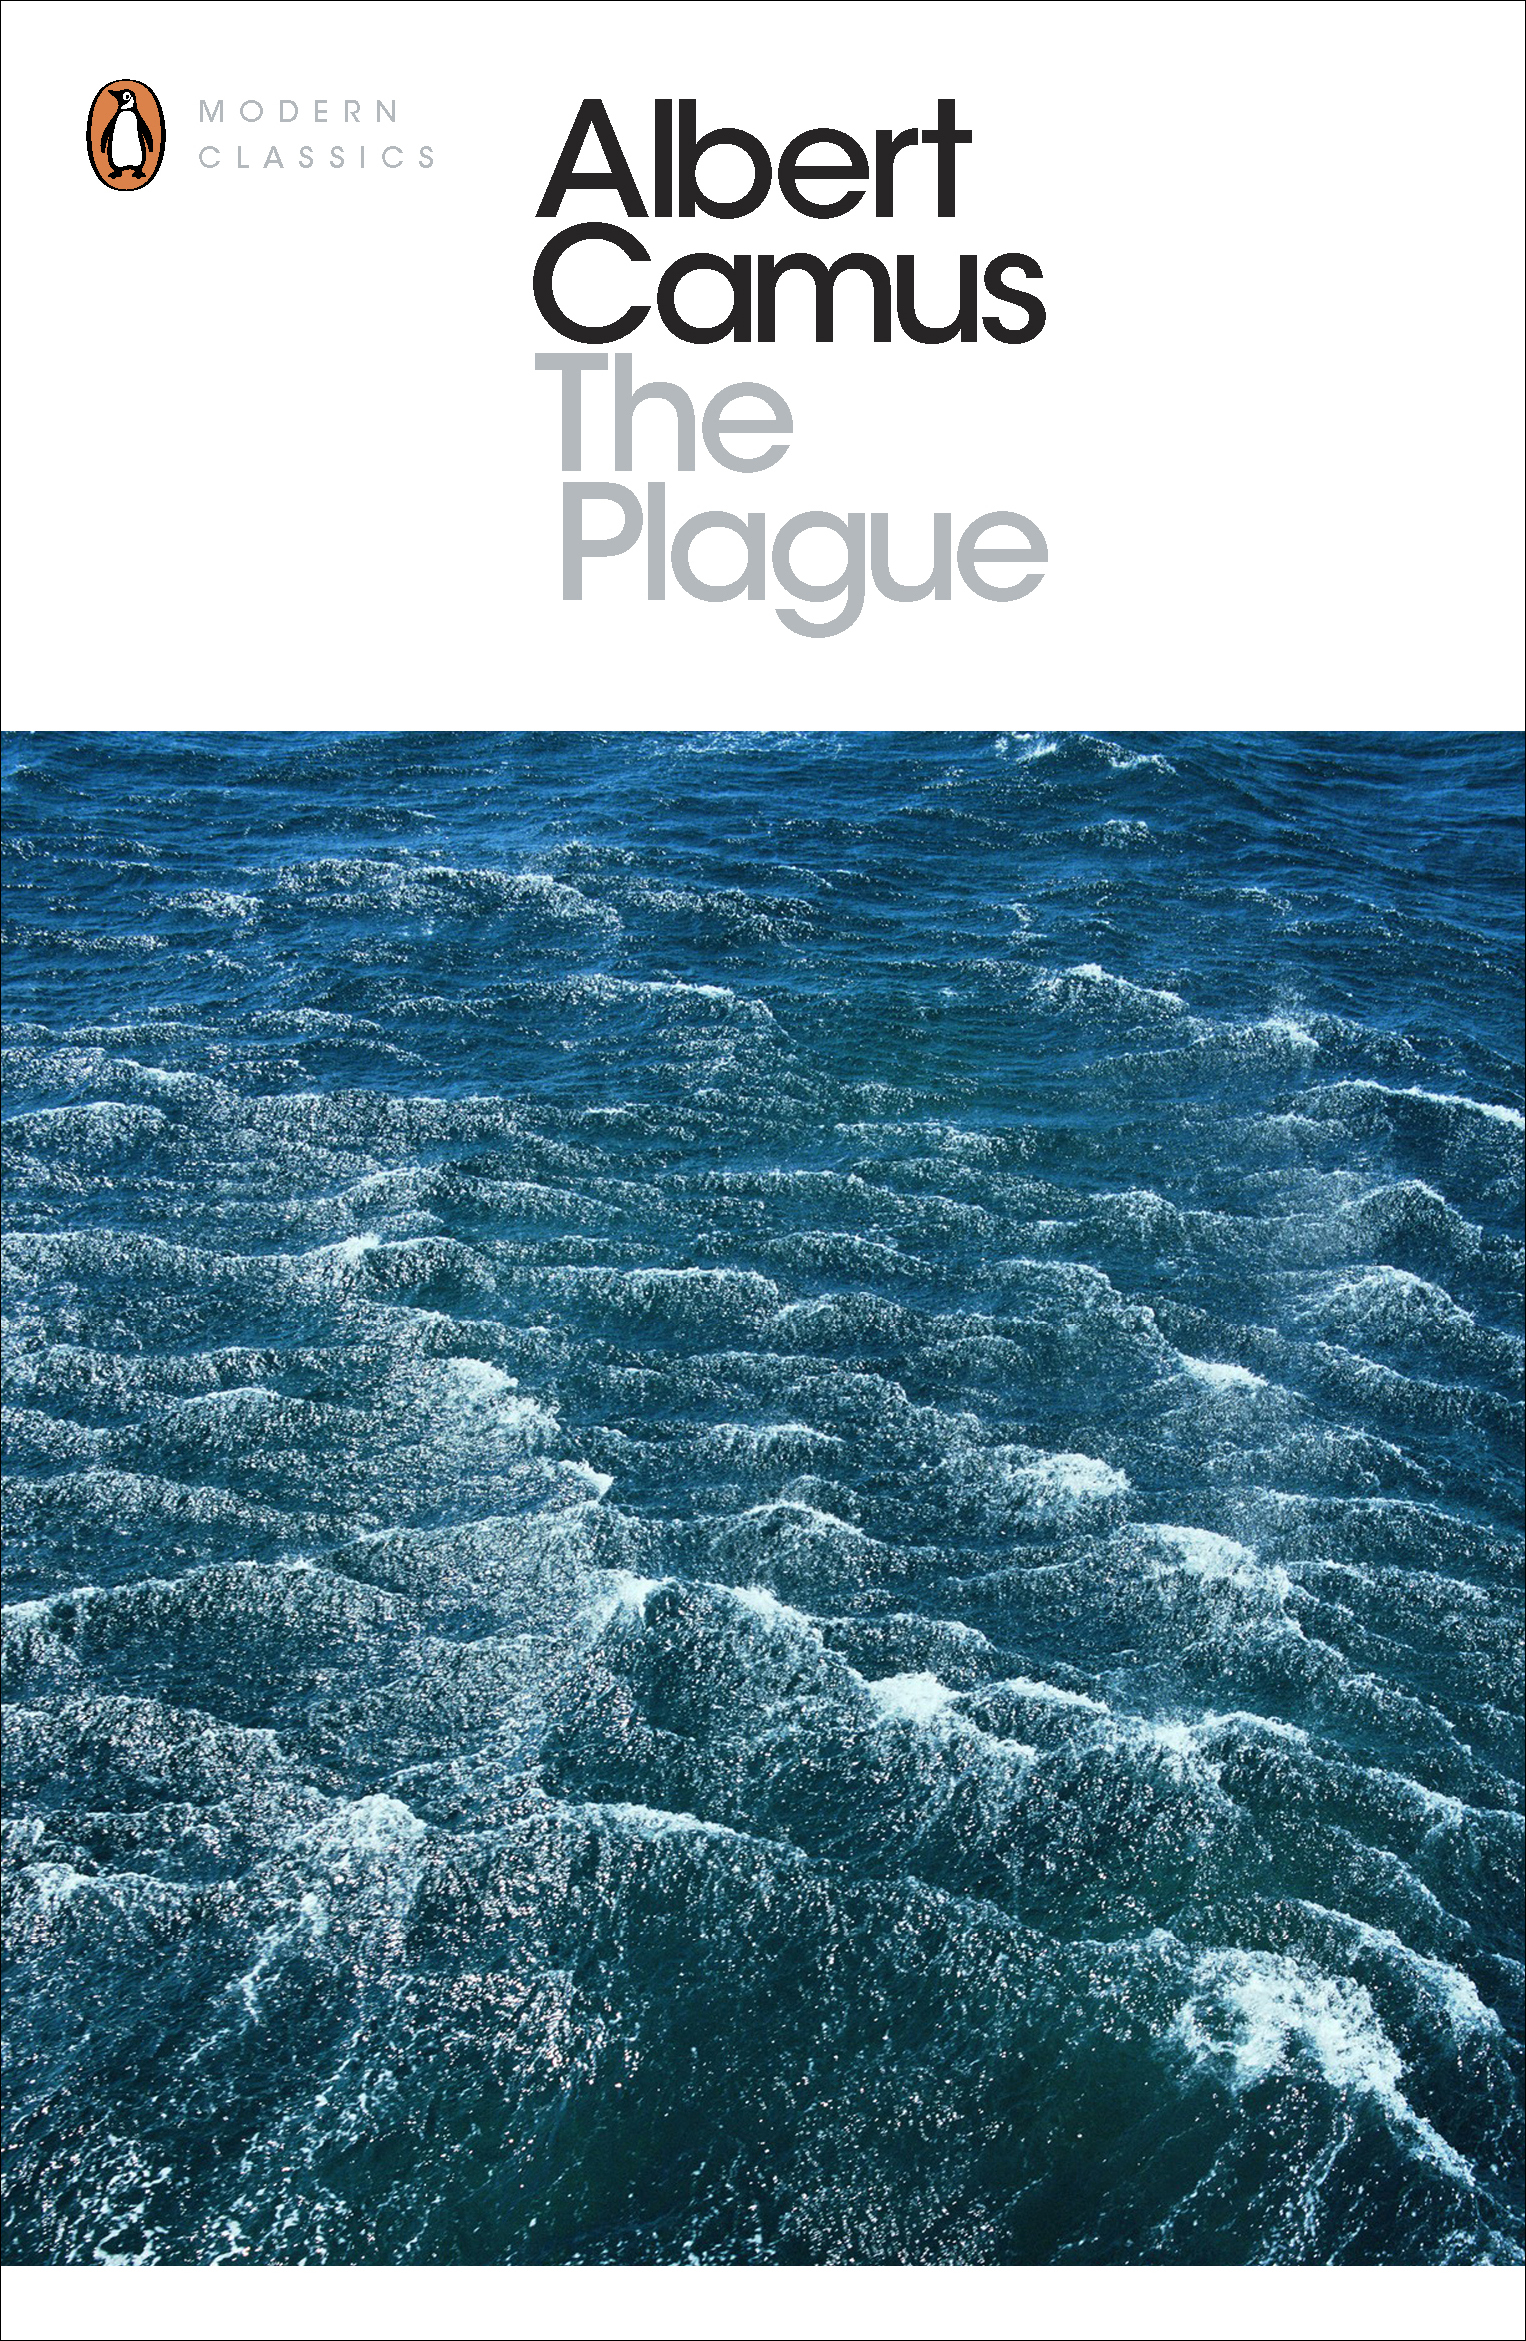 the plague albert camus essays The plague critical essays albert camus homework help  the wonderful thing about albert camus' the plague is that it depicts both the negative and positive of the human condition the three.